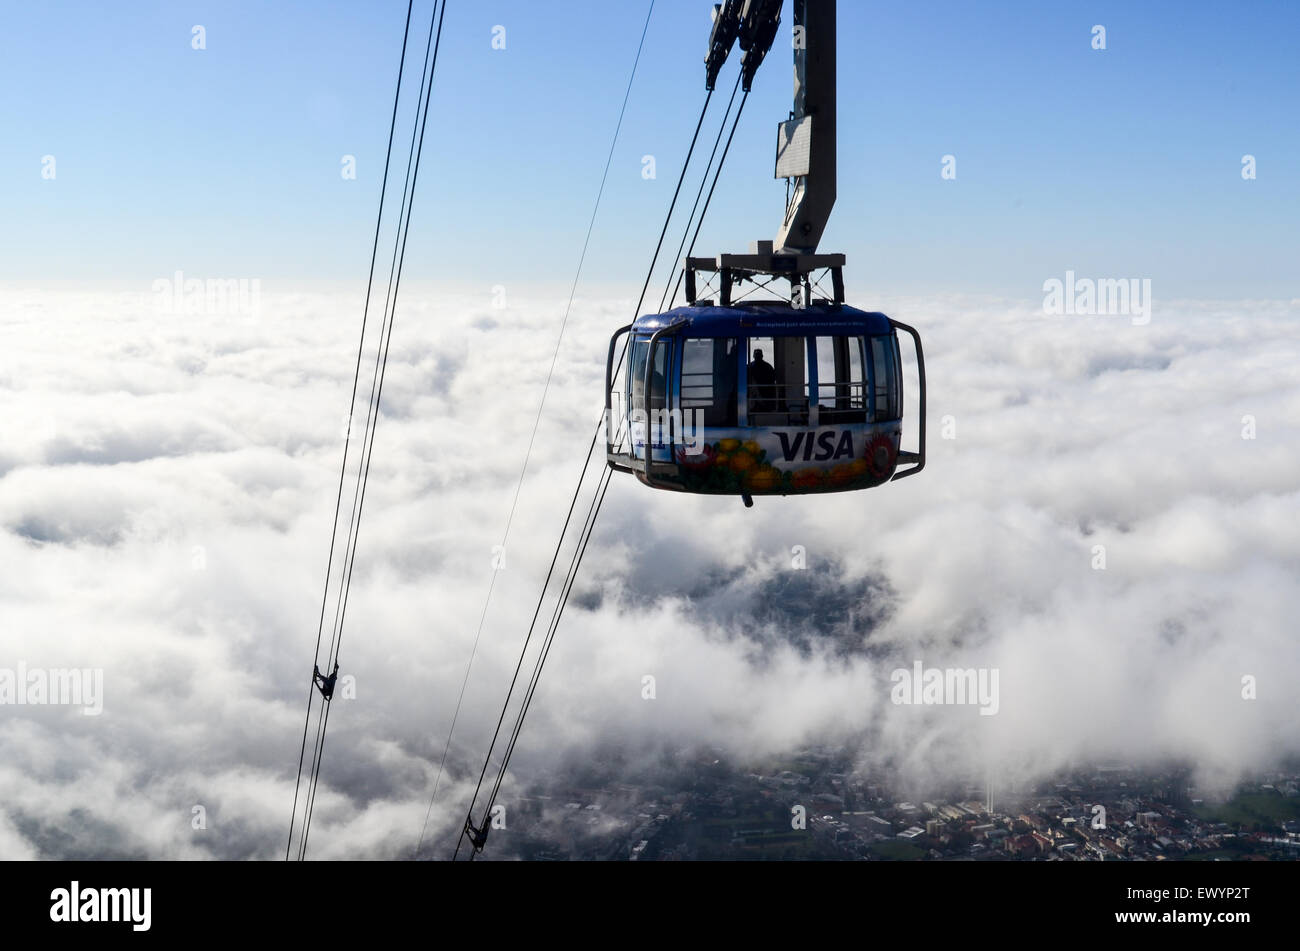 Cable car of the Table Mountain aerial cableway, Cape Town, emerging in the sky above the clouds - Stock Image